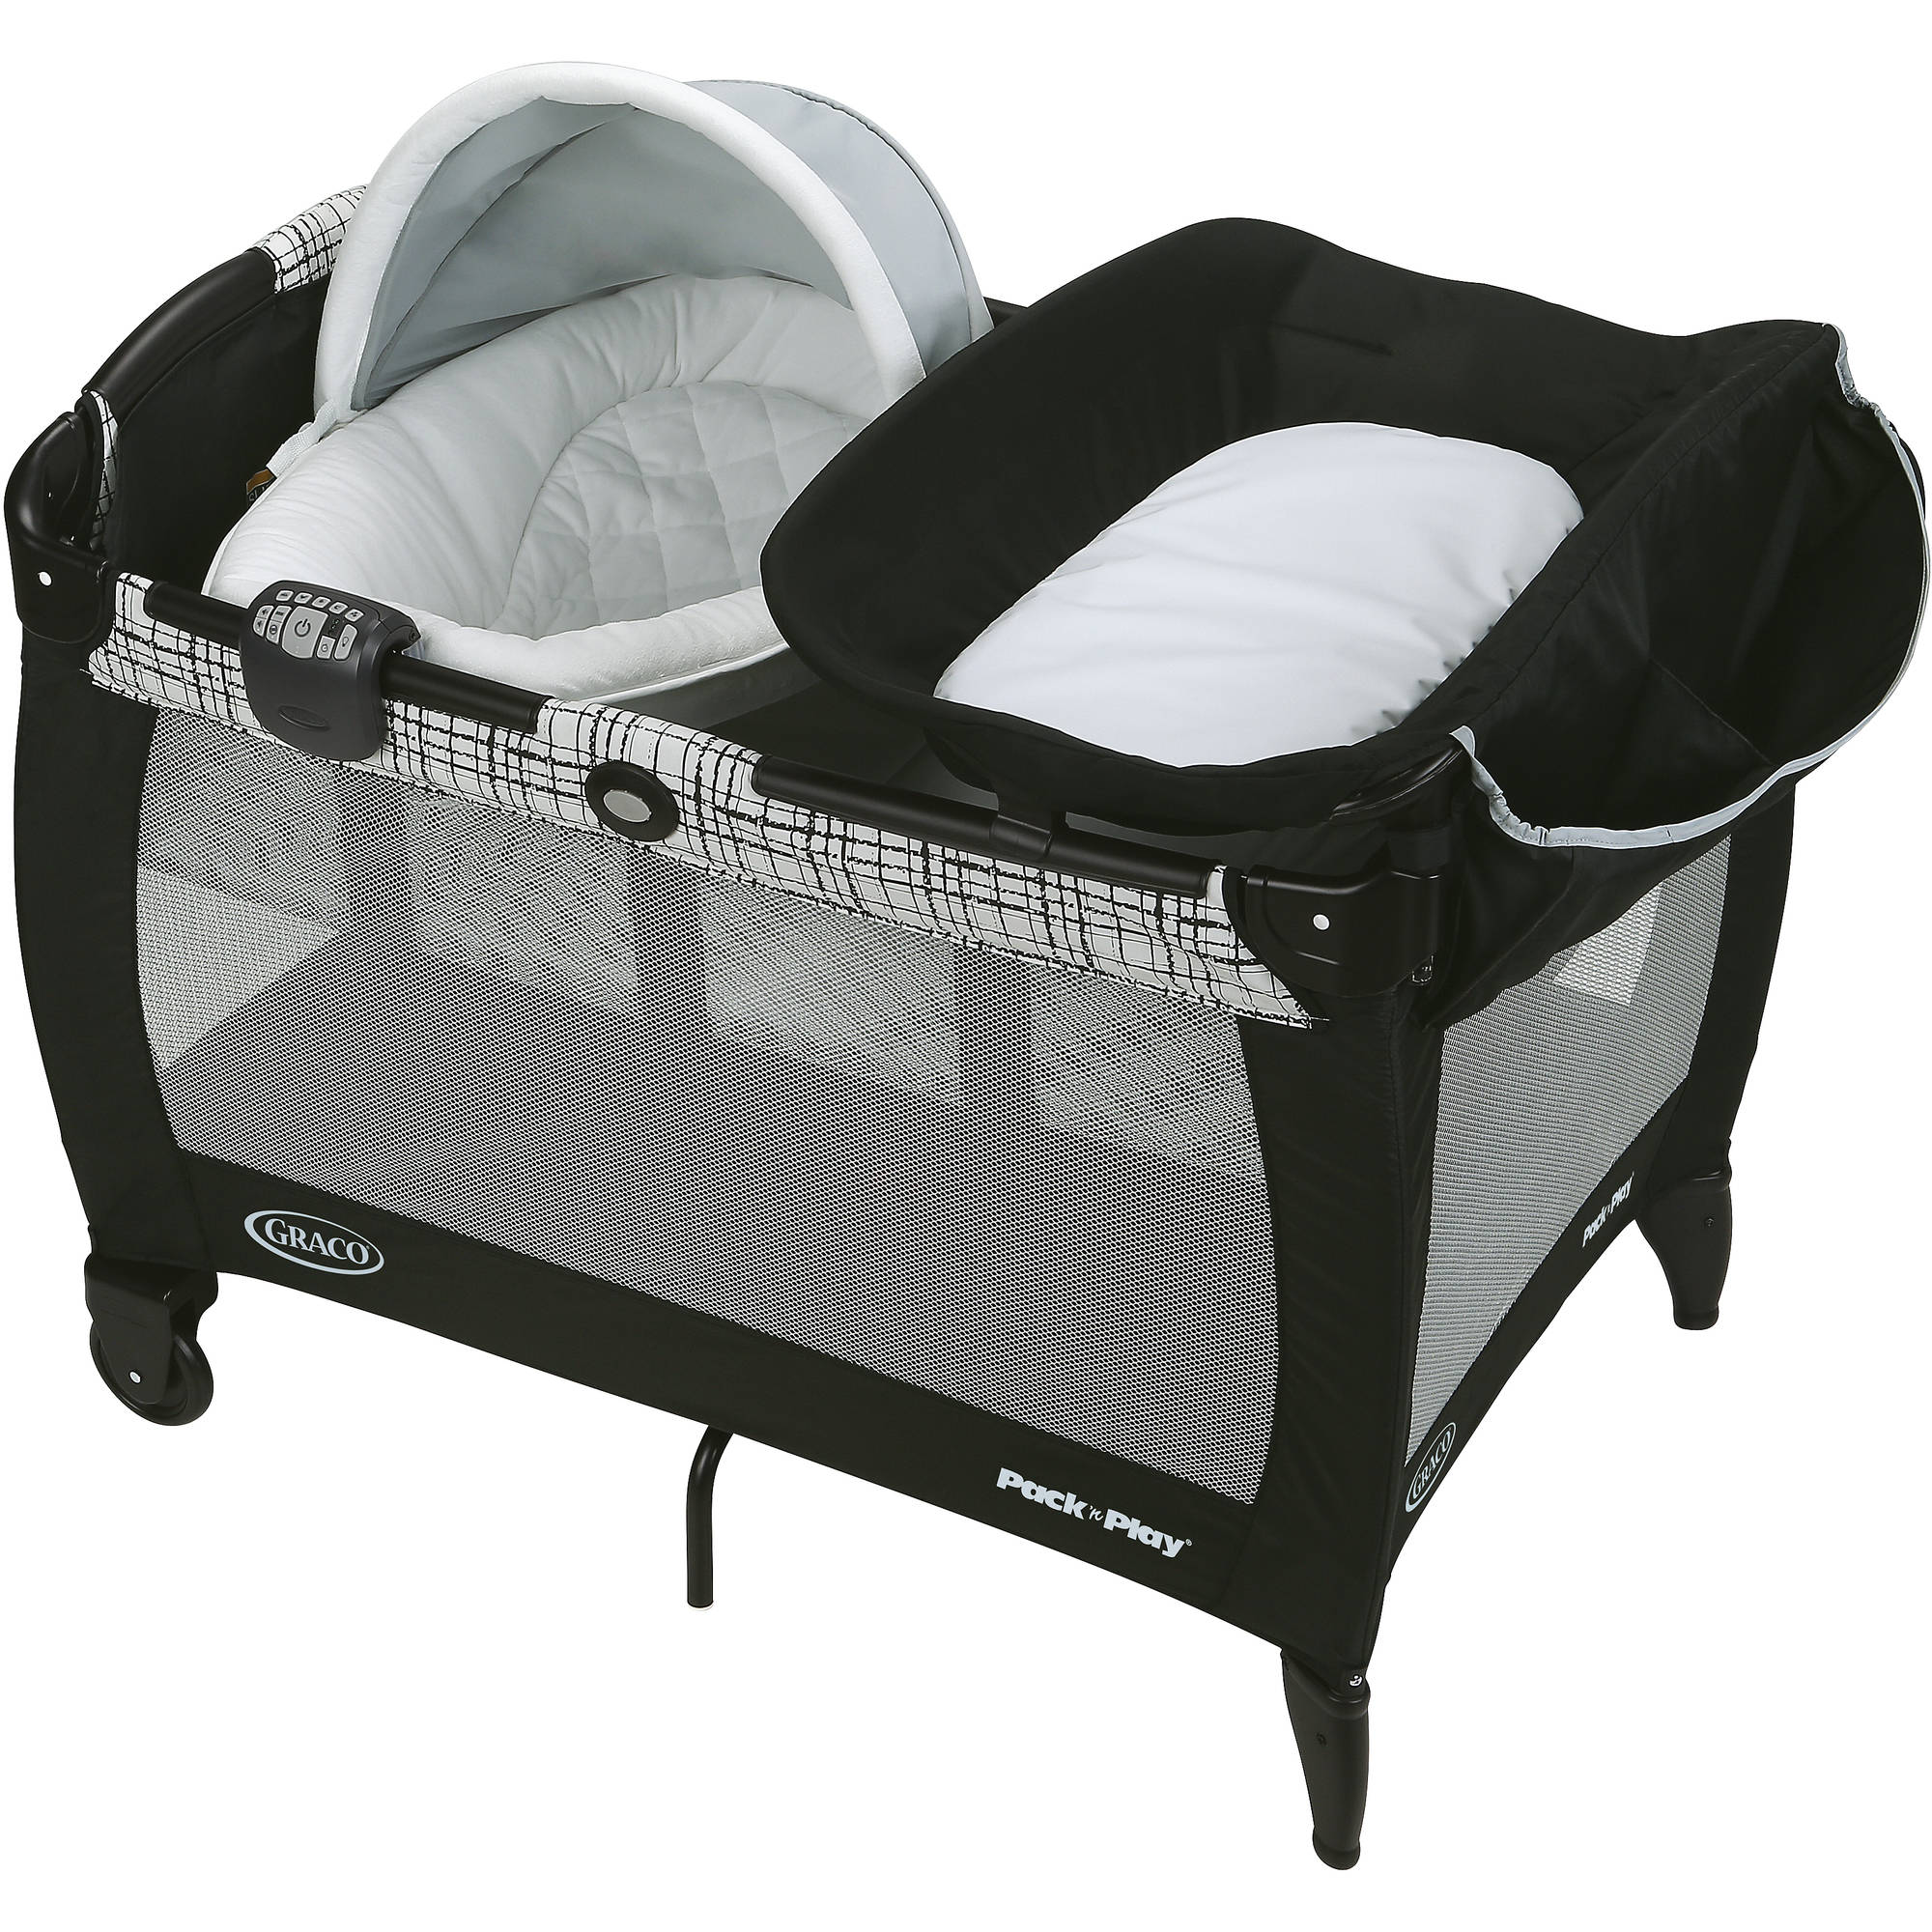 Graco Pack 'n Play Newborn Napper Playard with Soothe Surround Technology Bassinet, Teigen